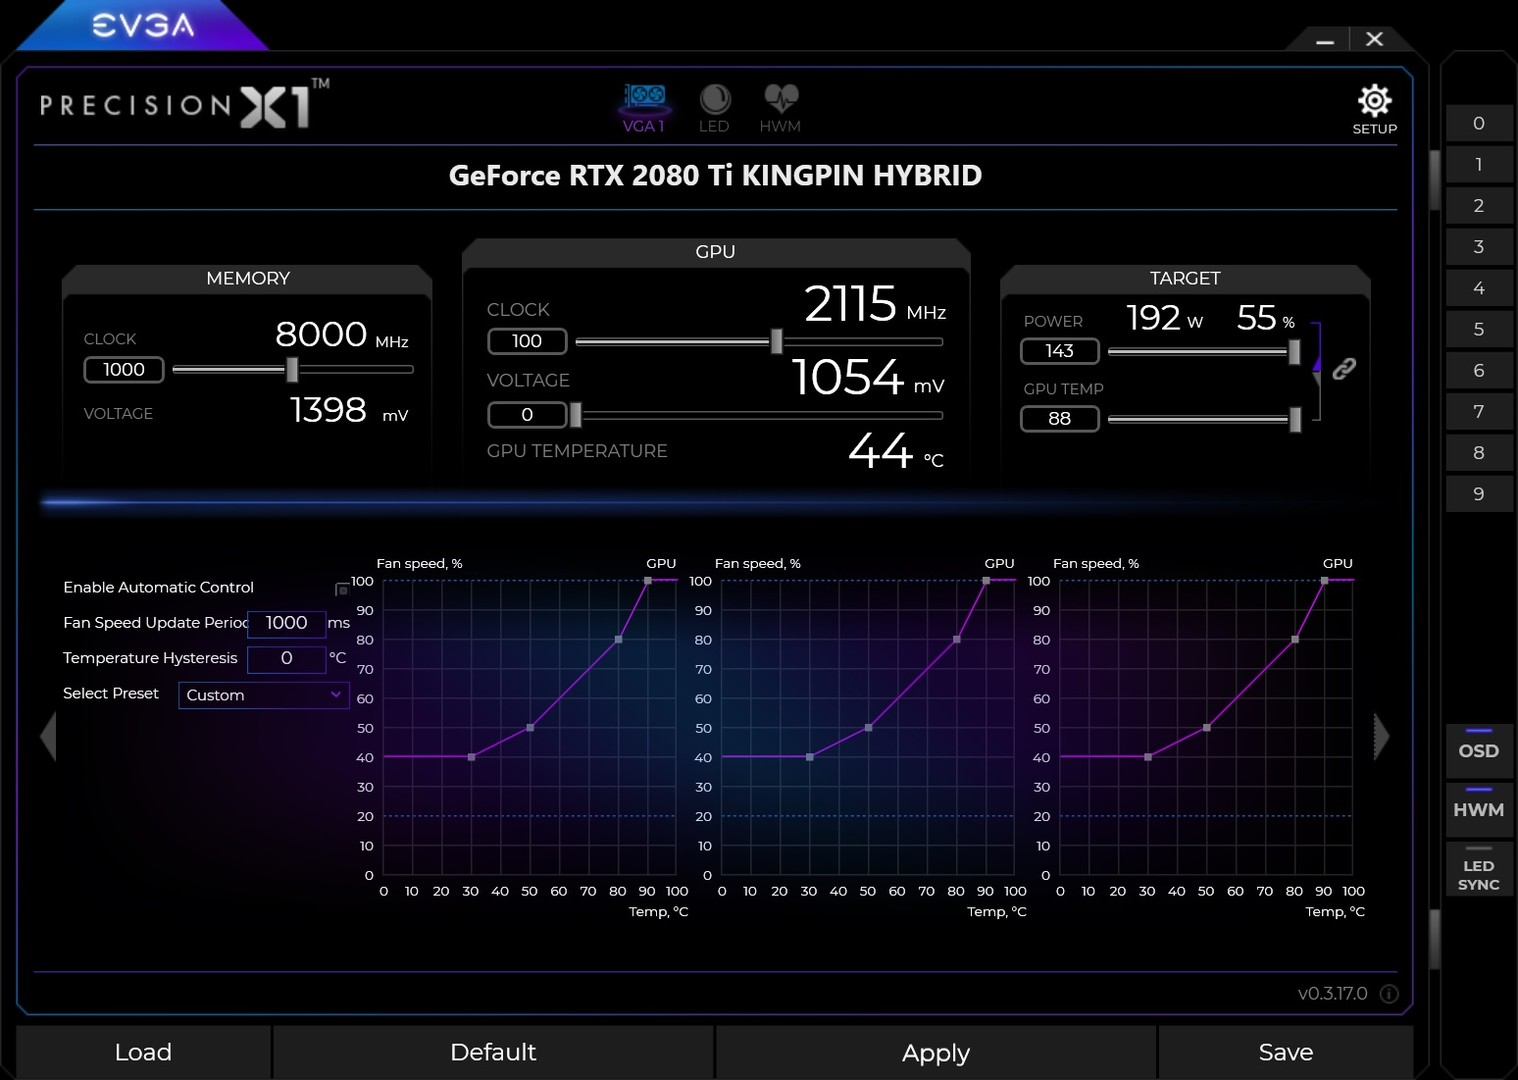 EVGA Precision X1 on Steam